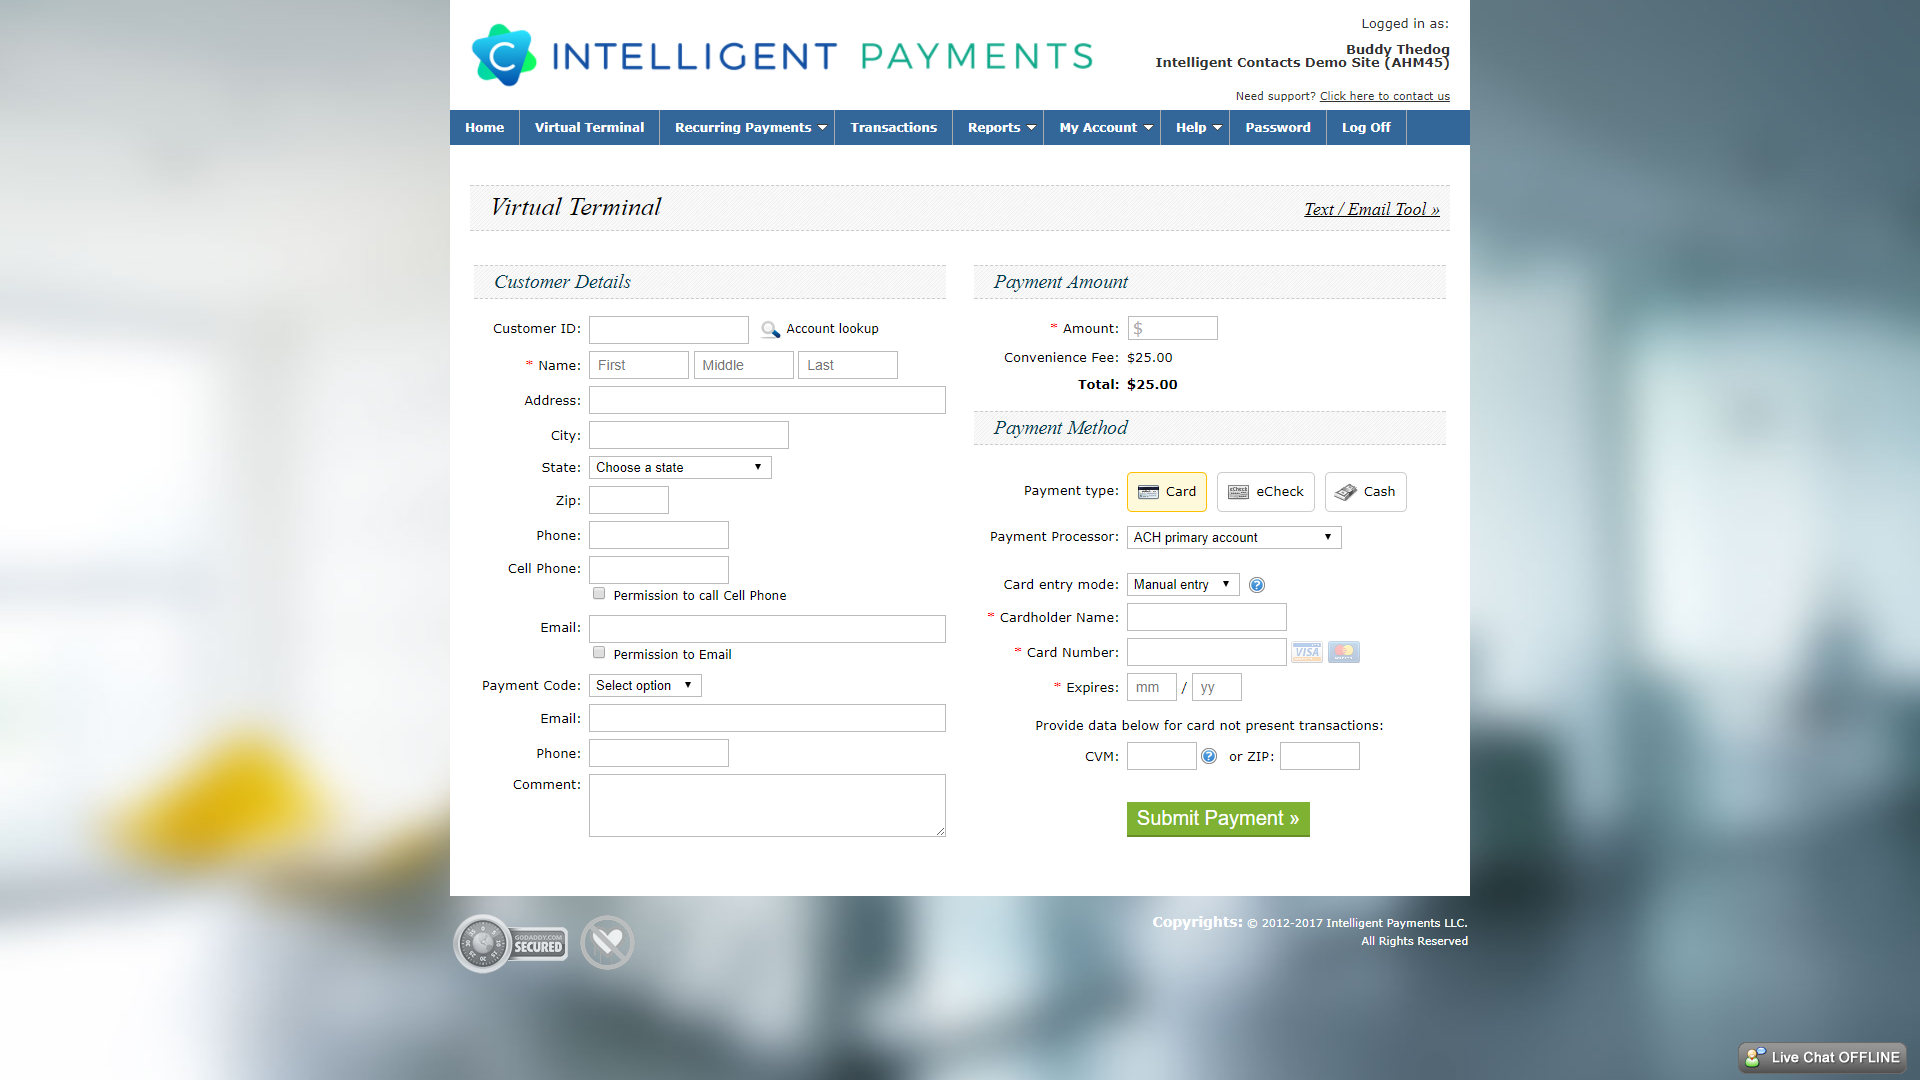 Take advantage of capturing, approving and processing payments in one place.